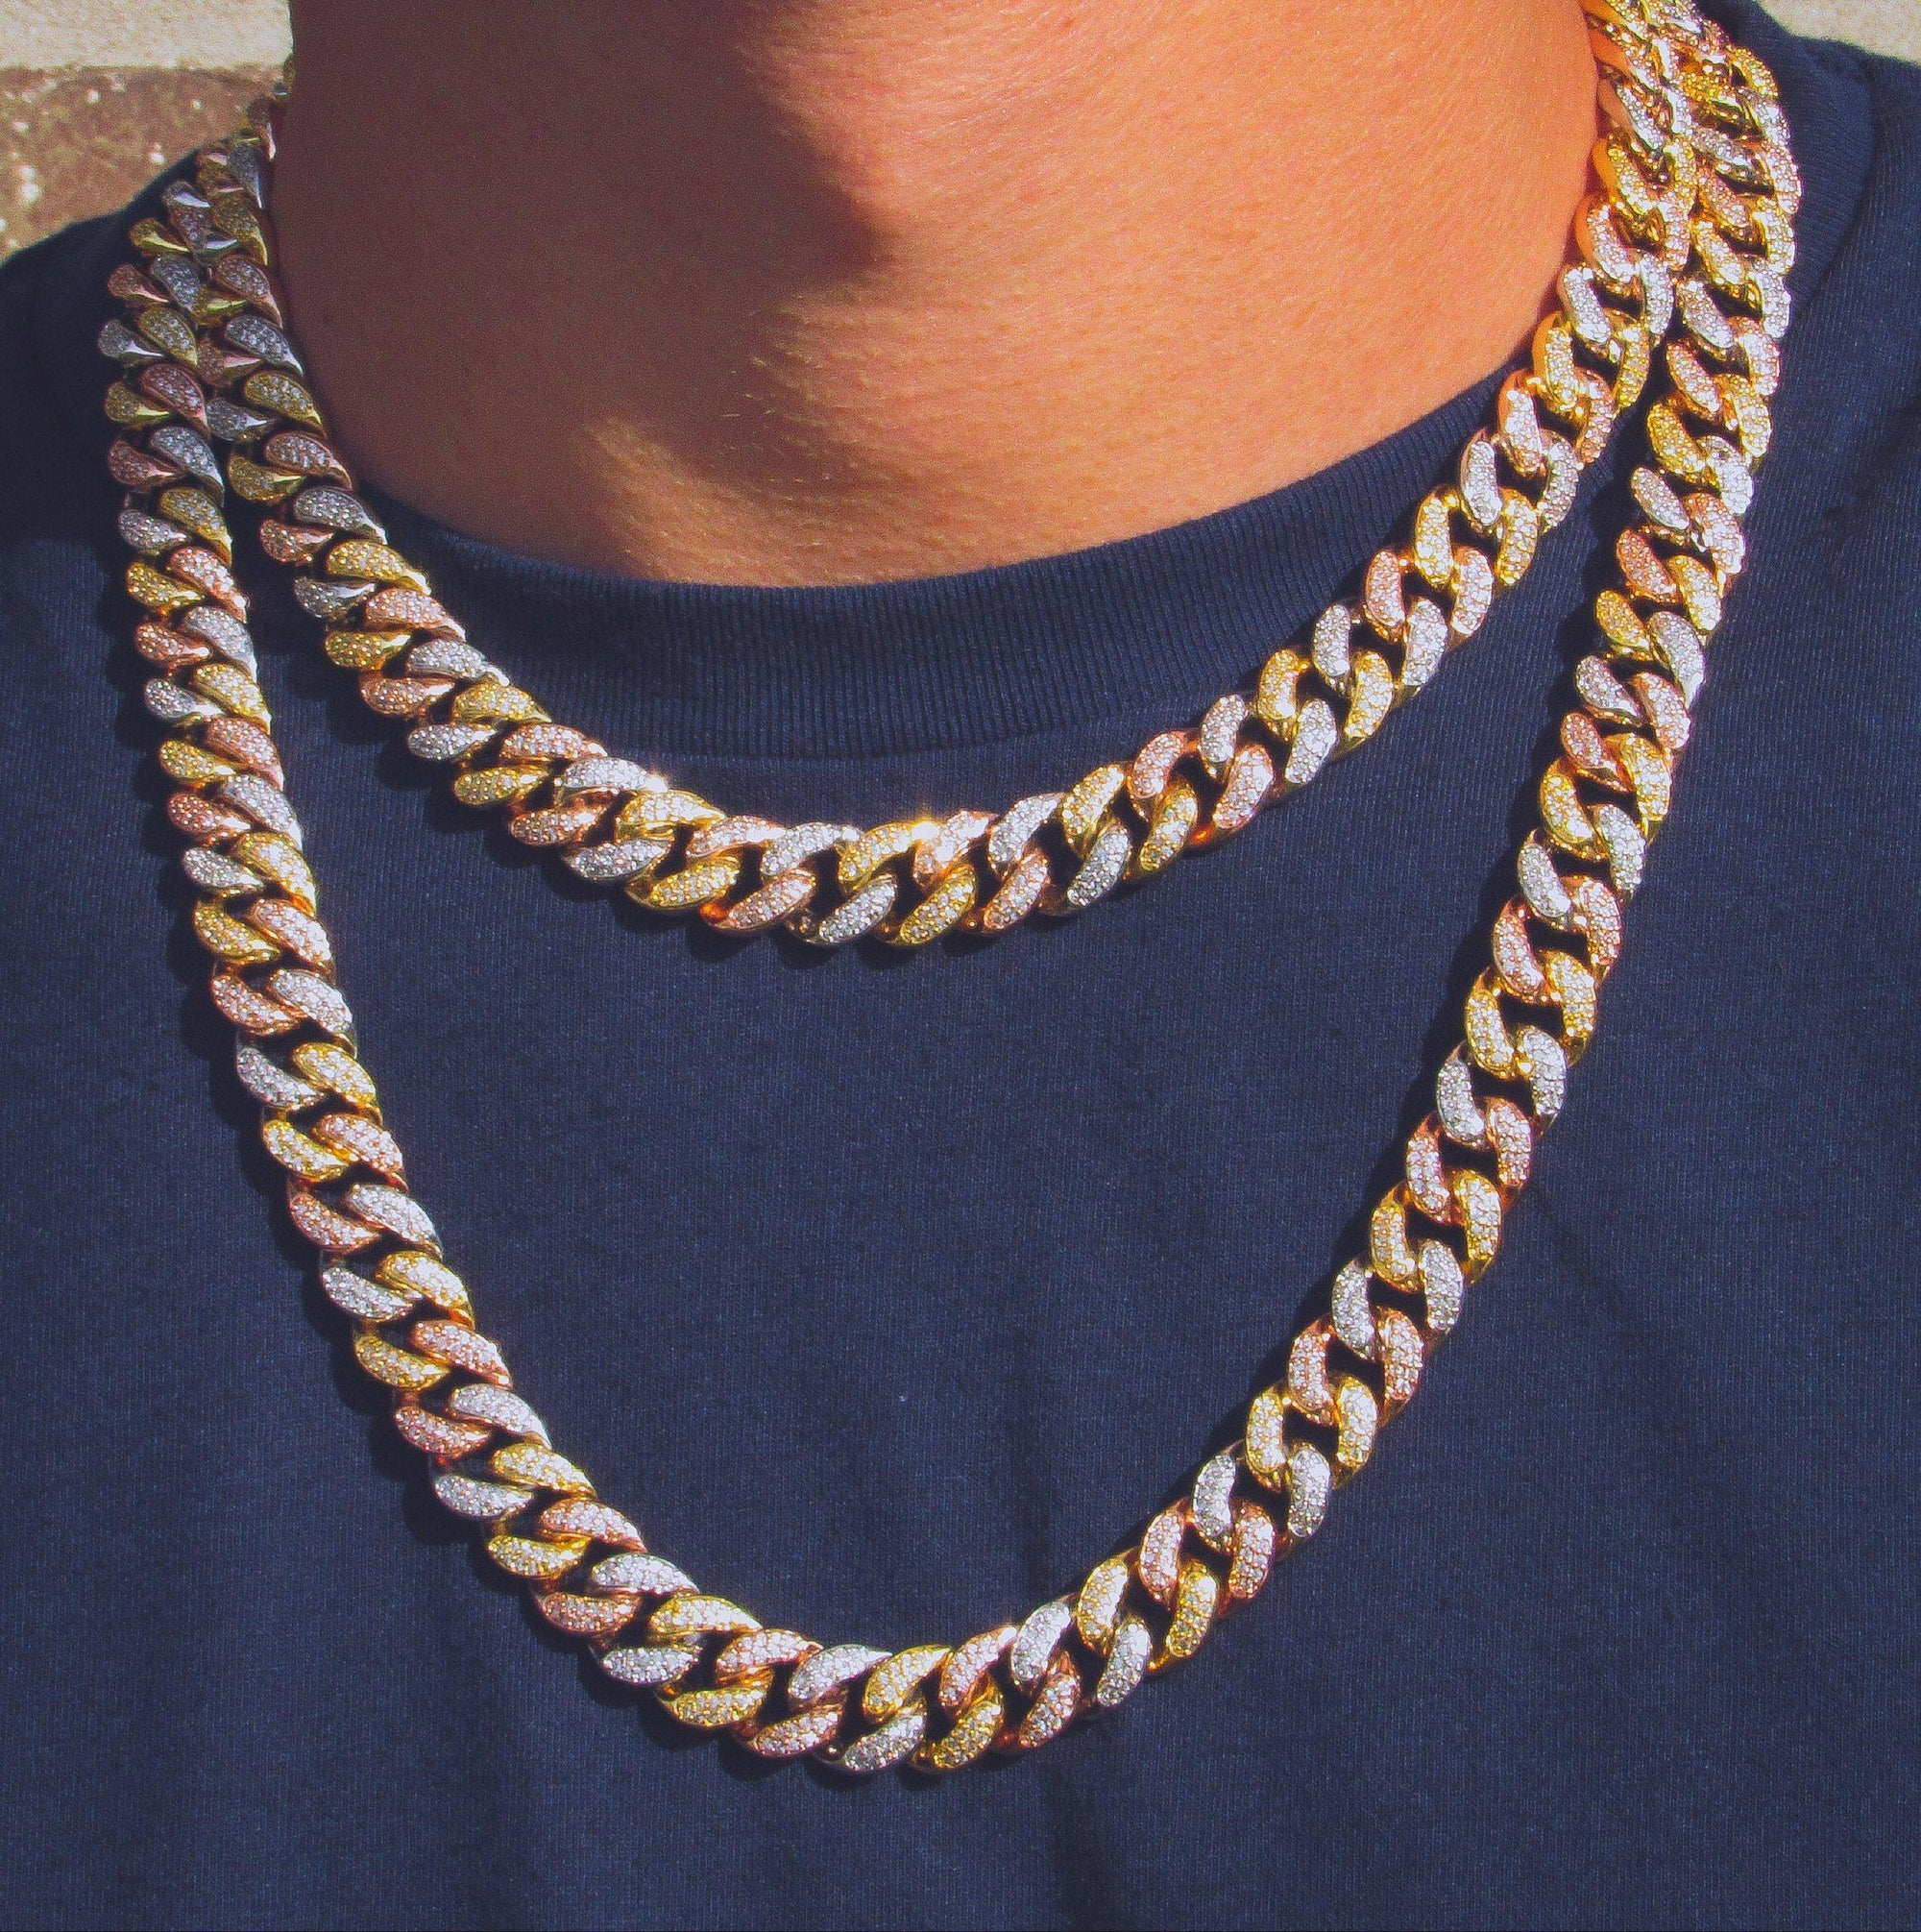 12mm Multicolored Miami Cuban Link Chain - IcedGold